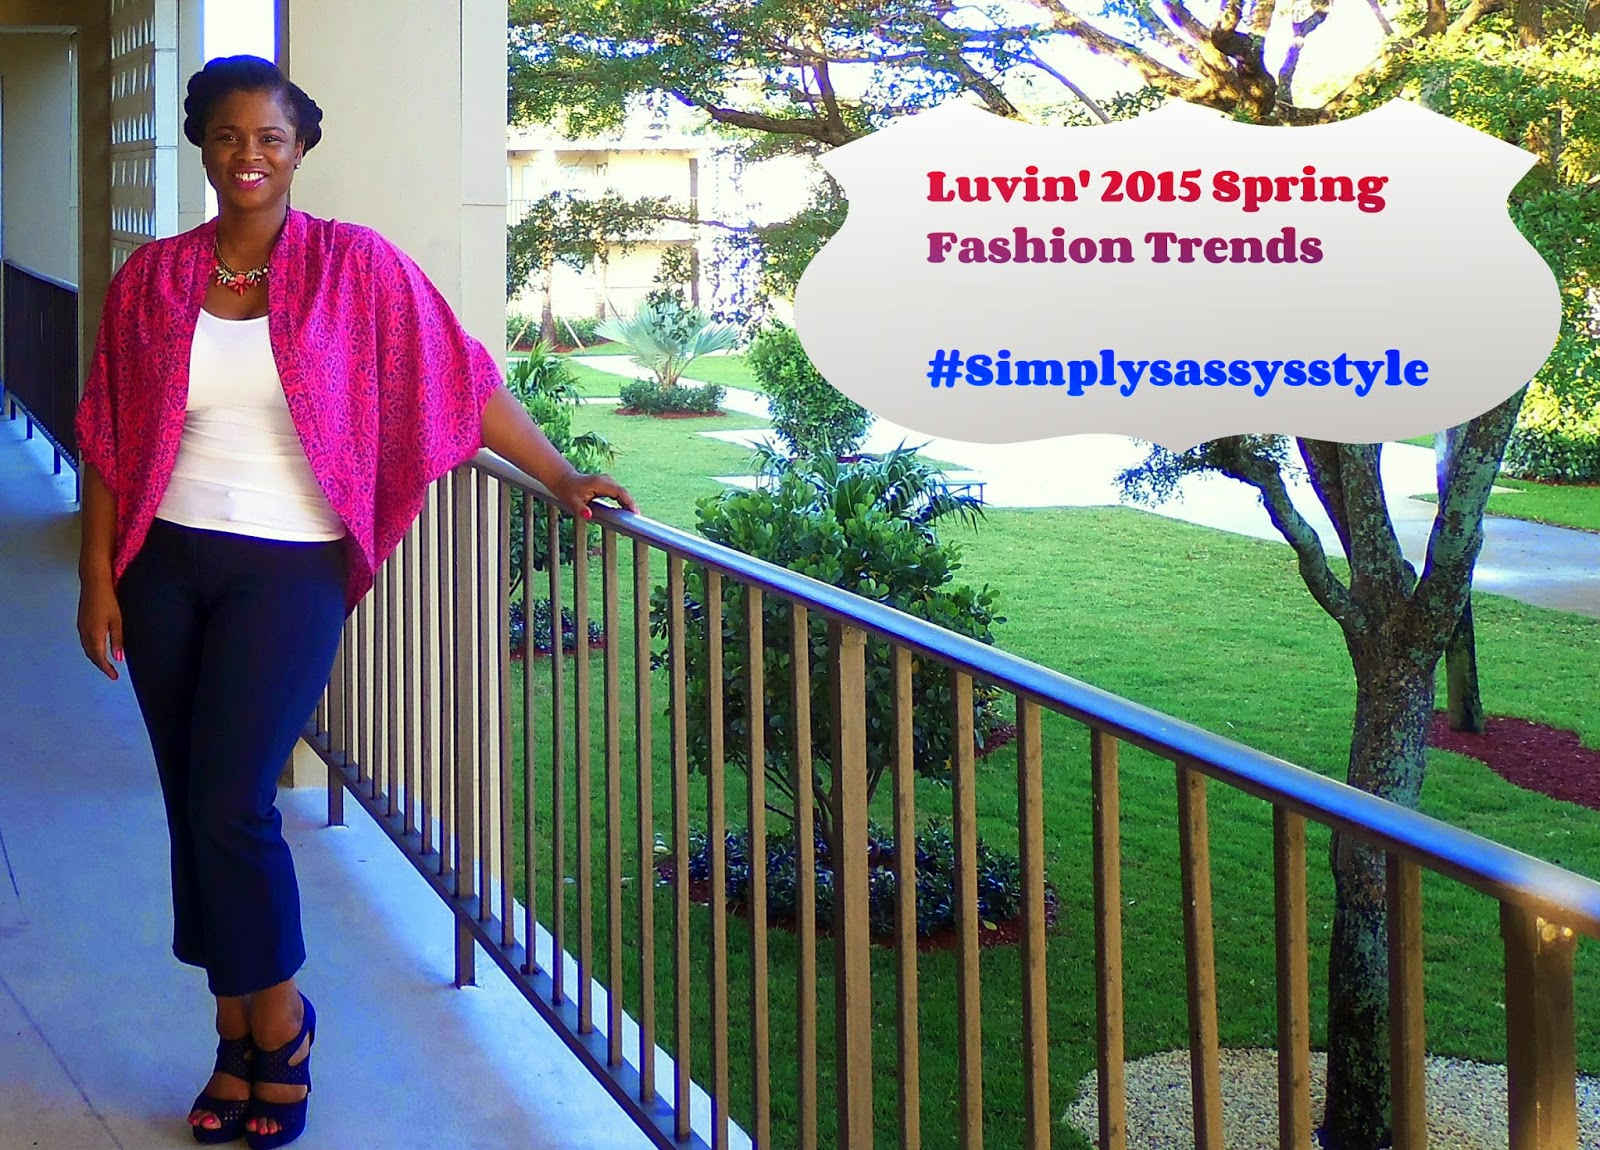 wearing Kimonos in the spring www.simplysassysstyle.com